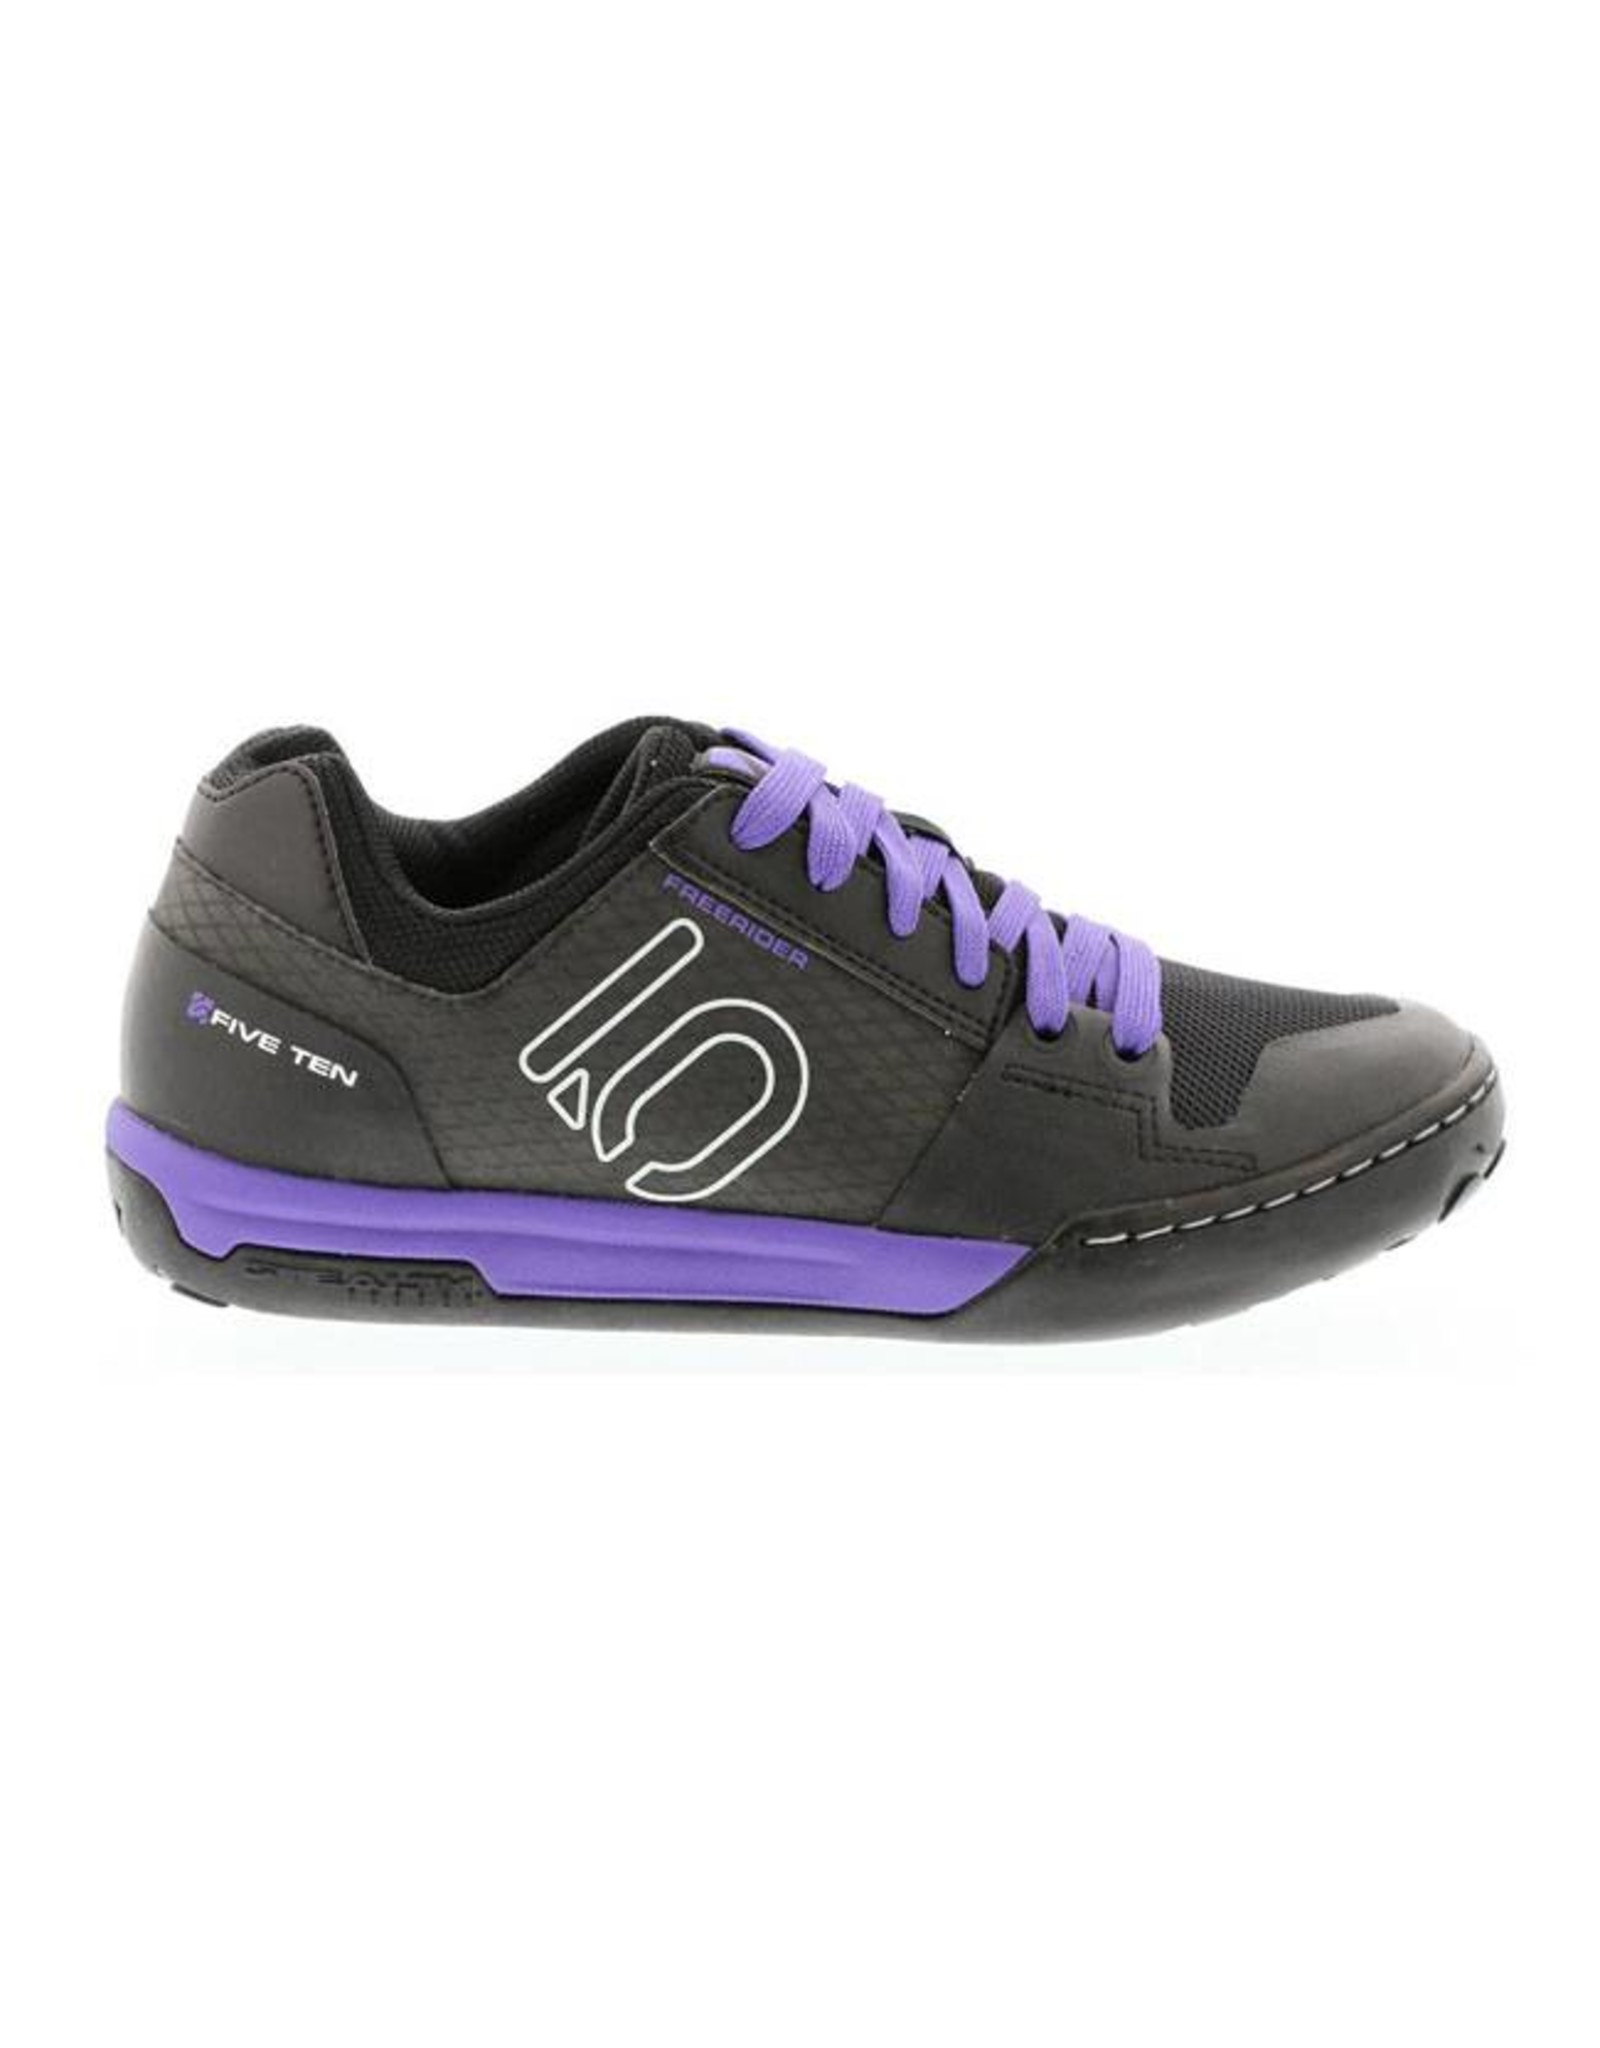 Five Ten Five Ten Freerider Contact Women's Flat Pedal Shoe: Split Purple 10.5